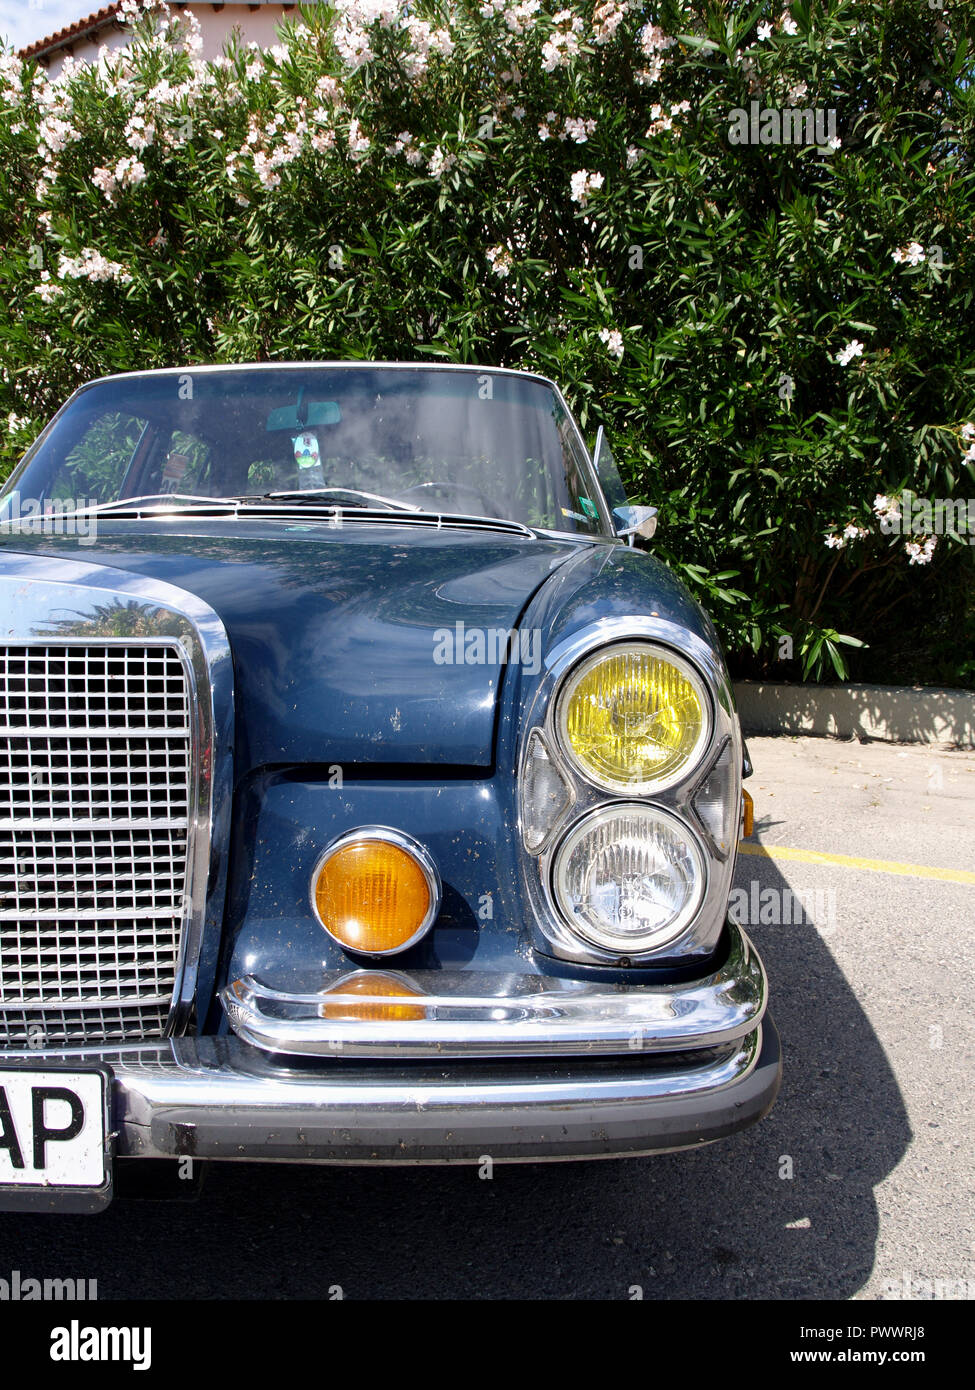 Vintage Mercedes s class on display at the 8th Hellenic Bulgarian LEKAM classic car rally at the Acharavi Park Hotel, Acharavi, Corfu, Greece - Stock Image